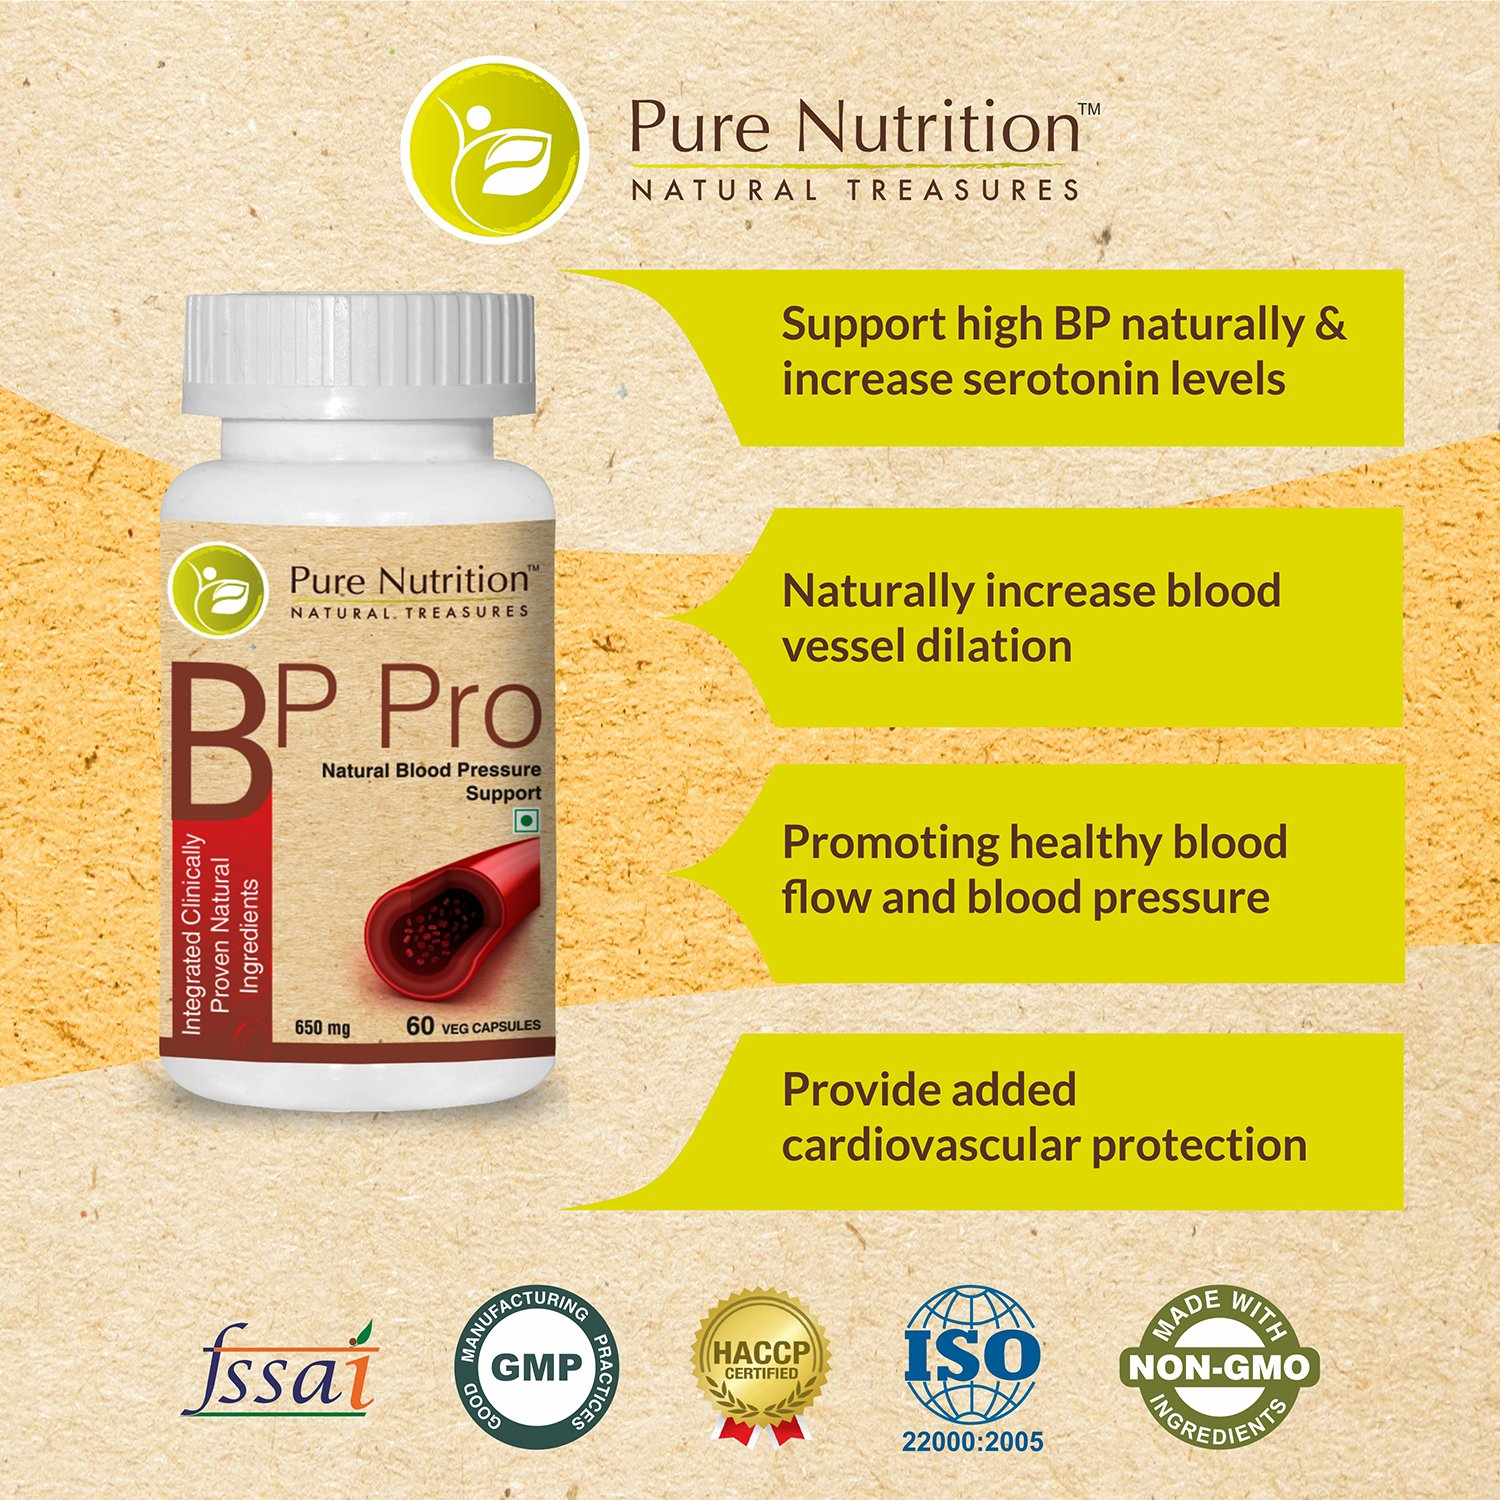 Amazon.com: Pure Nutrition BP Pro Management - Herbal Blood Pressure support supplement - 90 Veg Capsules (w/Terminalia Arjuna Bark Extract, ...